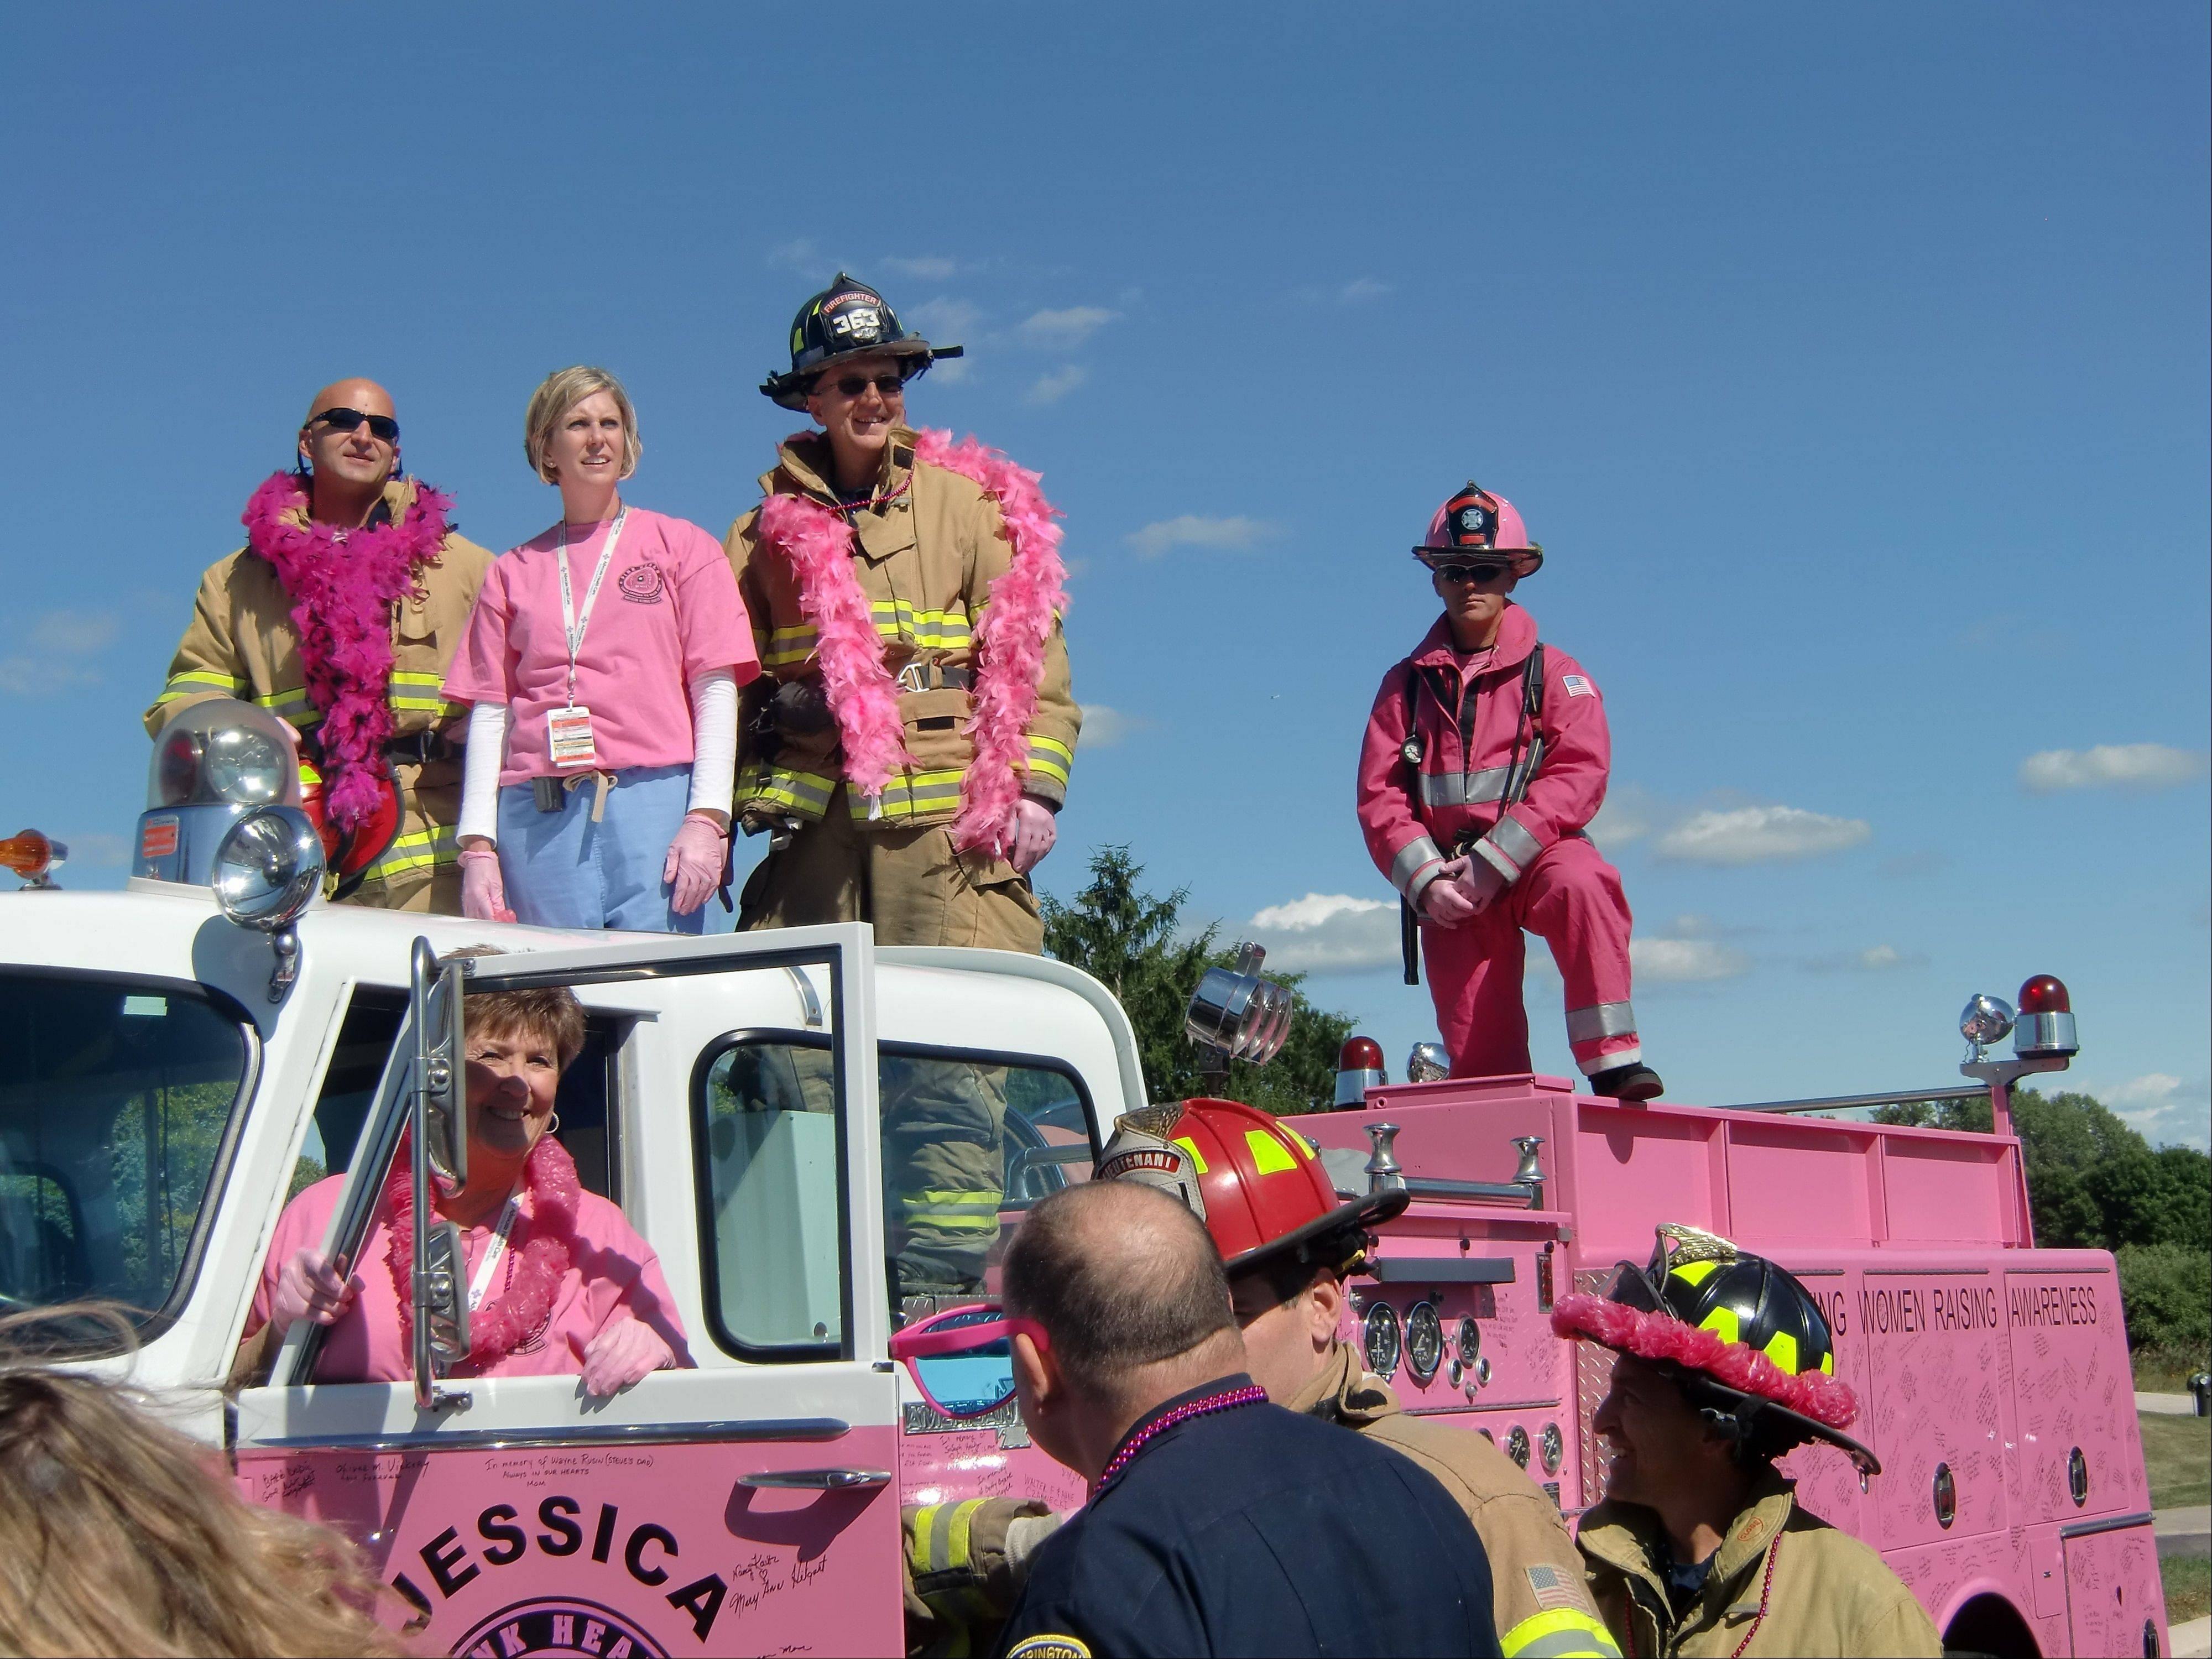 Emergency Medical Service personnel from Barrington and Lake Zurich participate in the taping of the video along with a pink fire engine named Jessica that's used to promote breast cancer awareness.